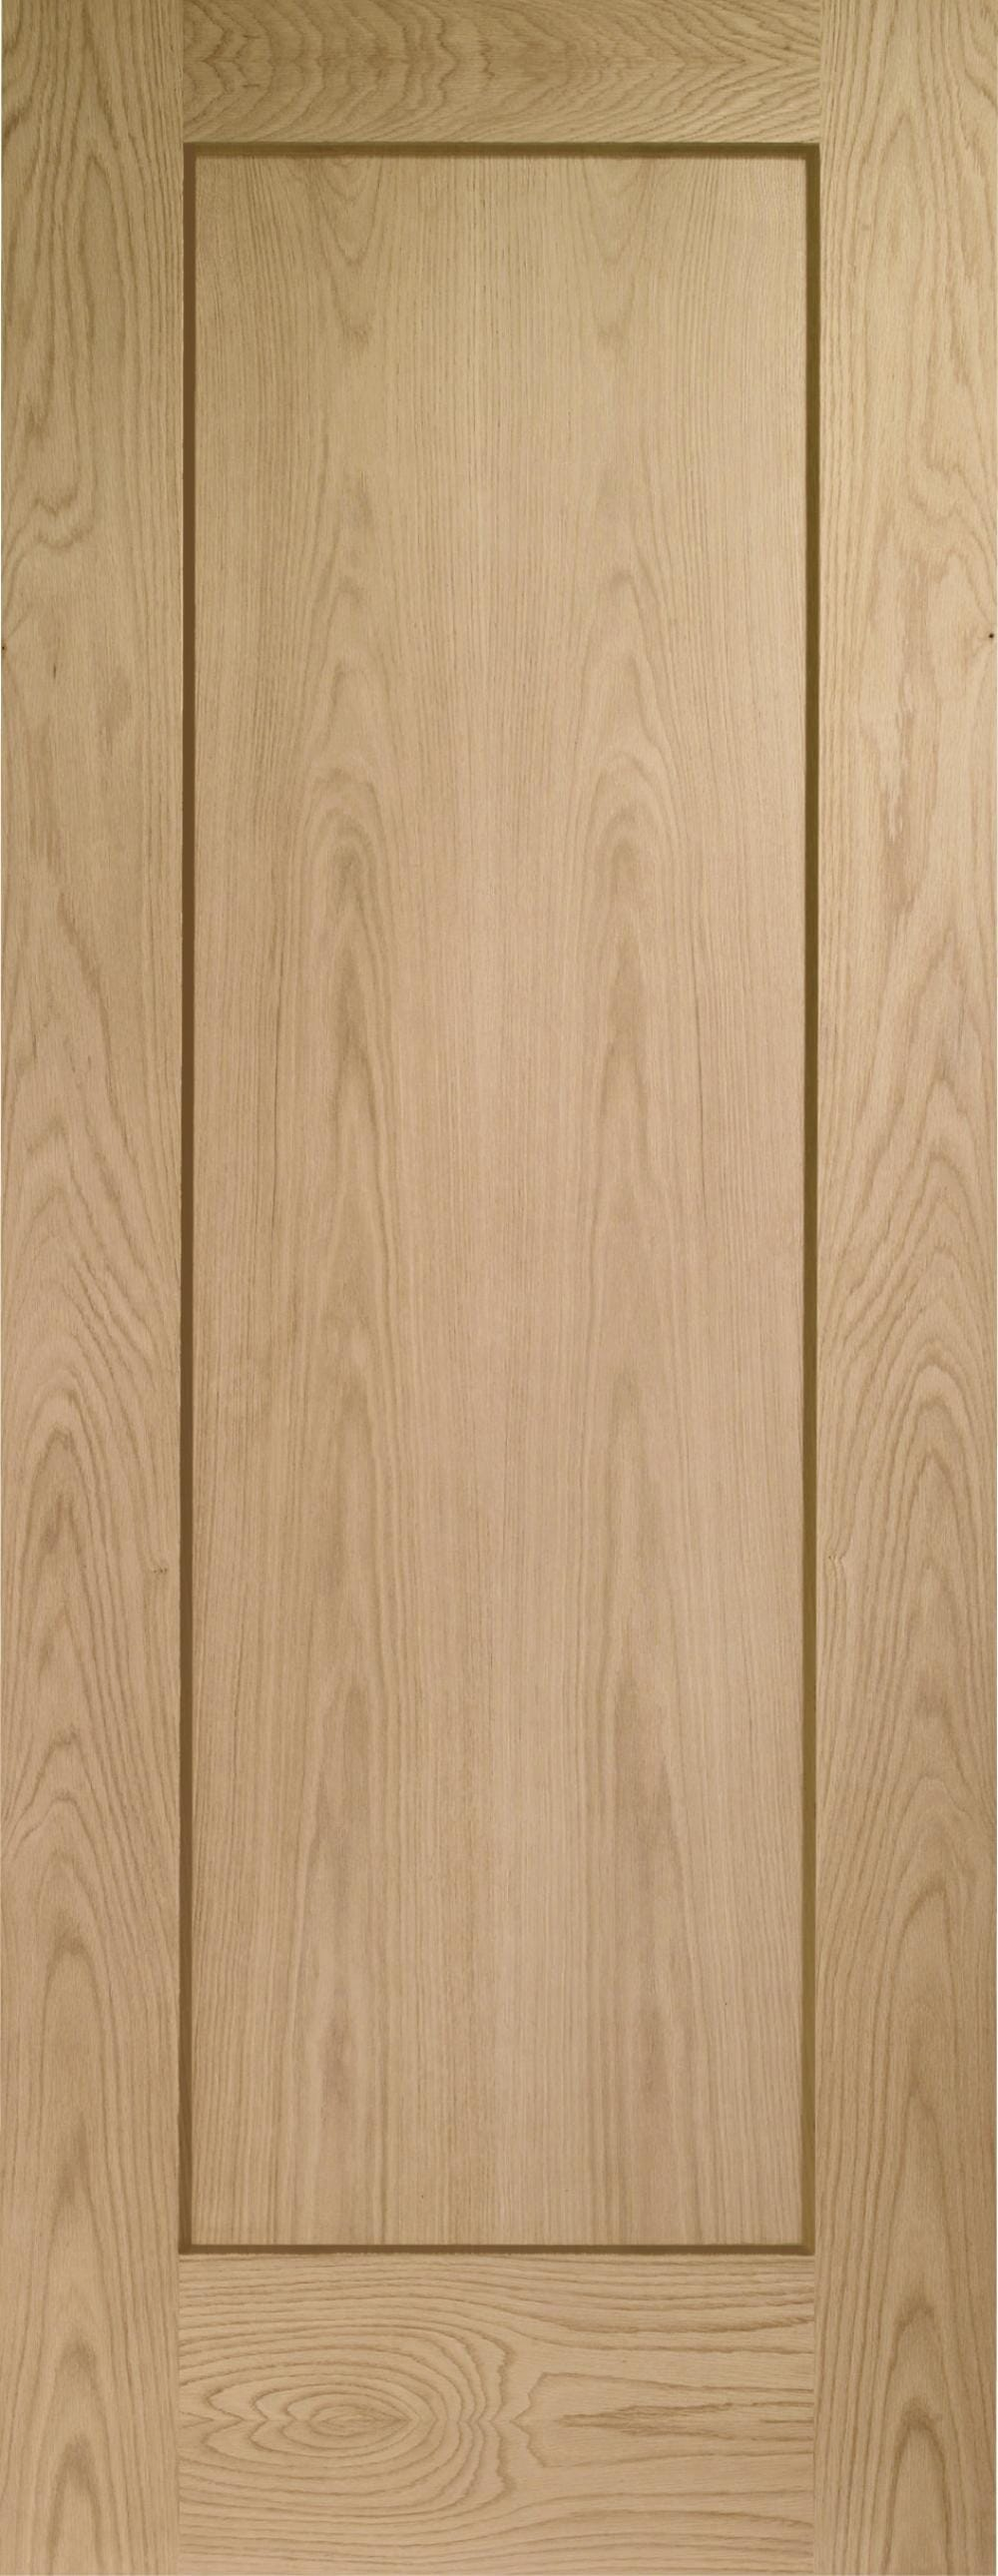 Pattern 10 Oak  - Prefinished Image